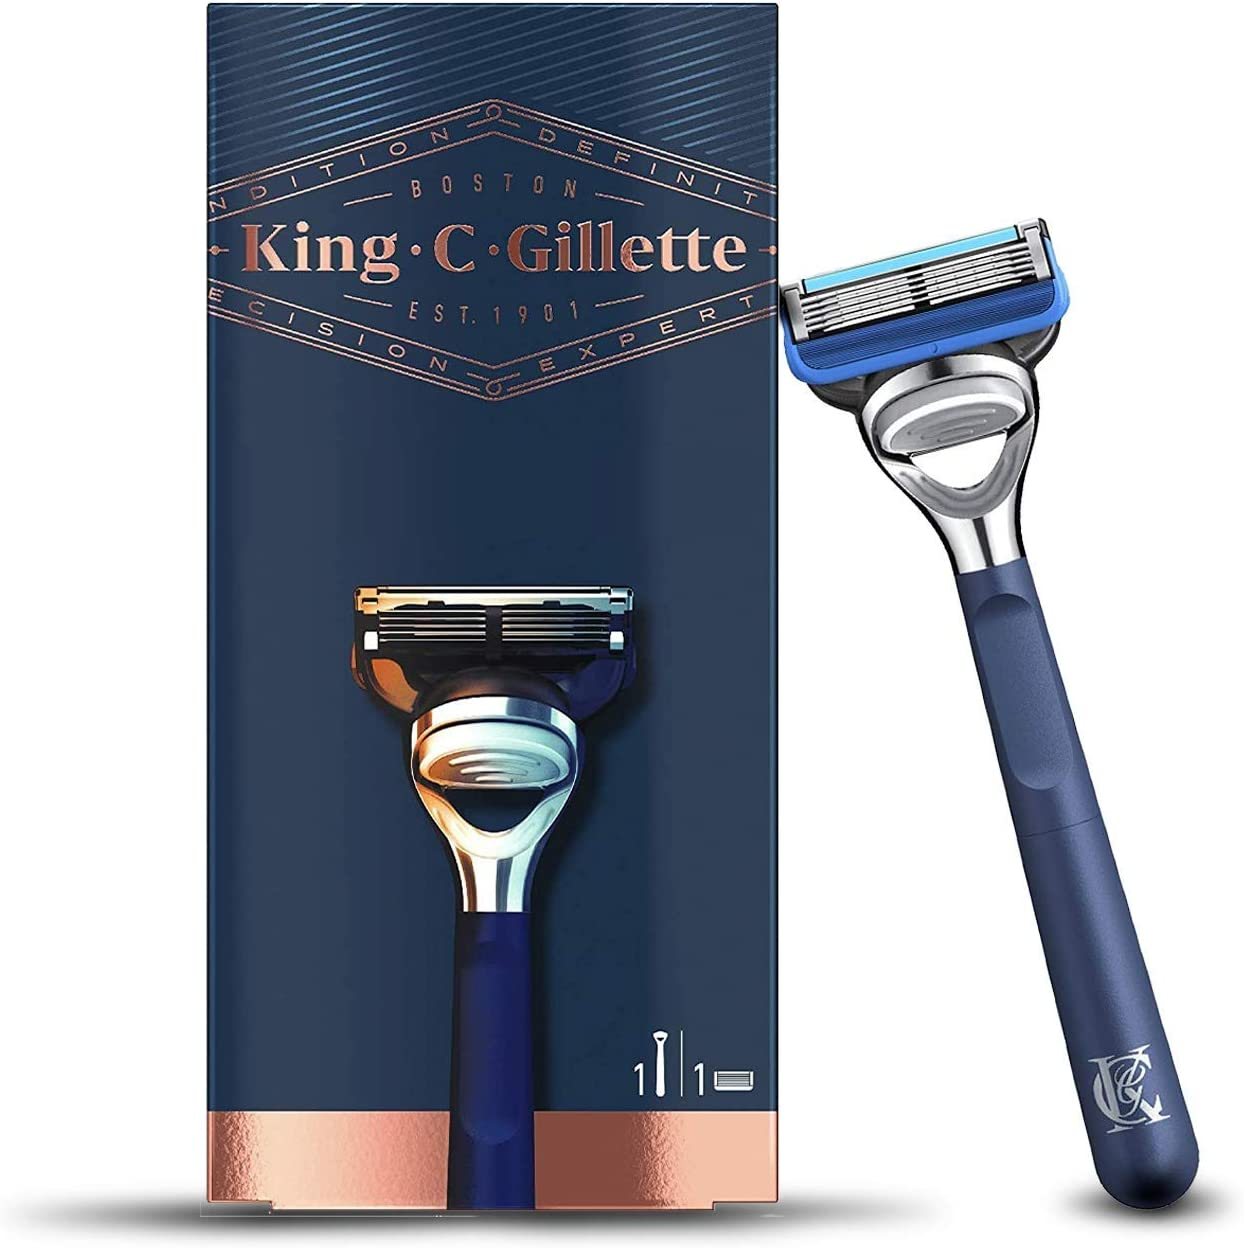 King C. Gillette Shave and Edging Razor for Men, 5 Premium Blades with Precision Trimmer, Gift Set Ideas for Him/Dad